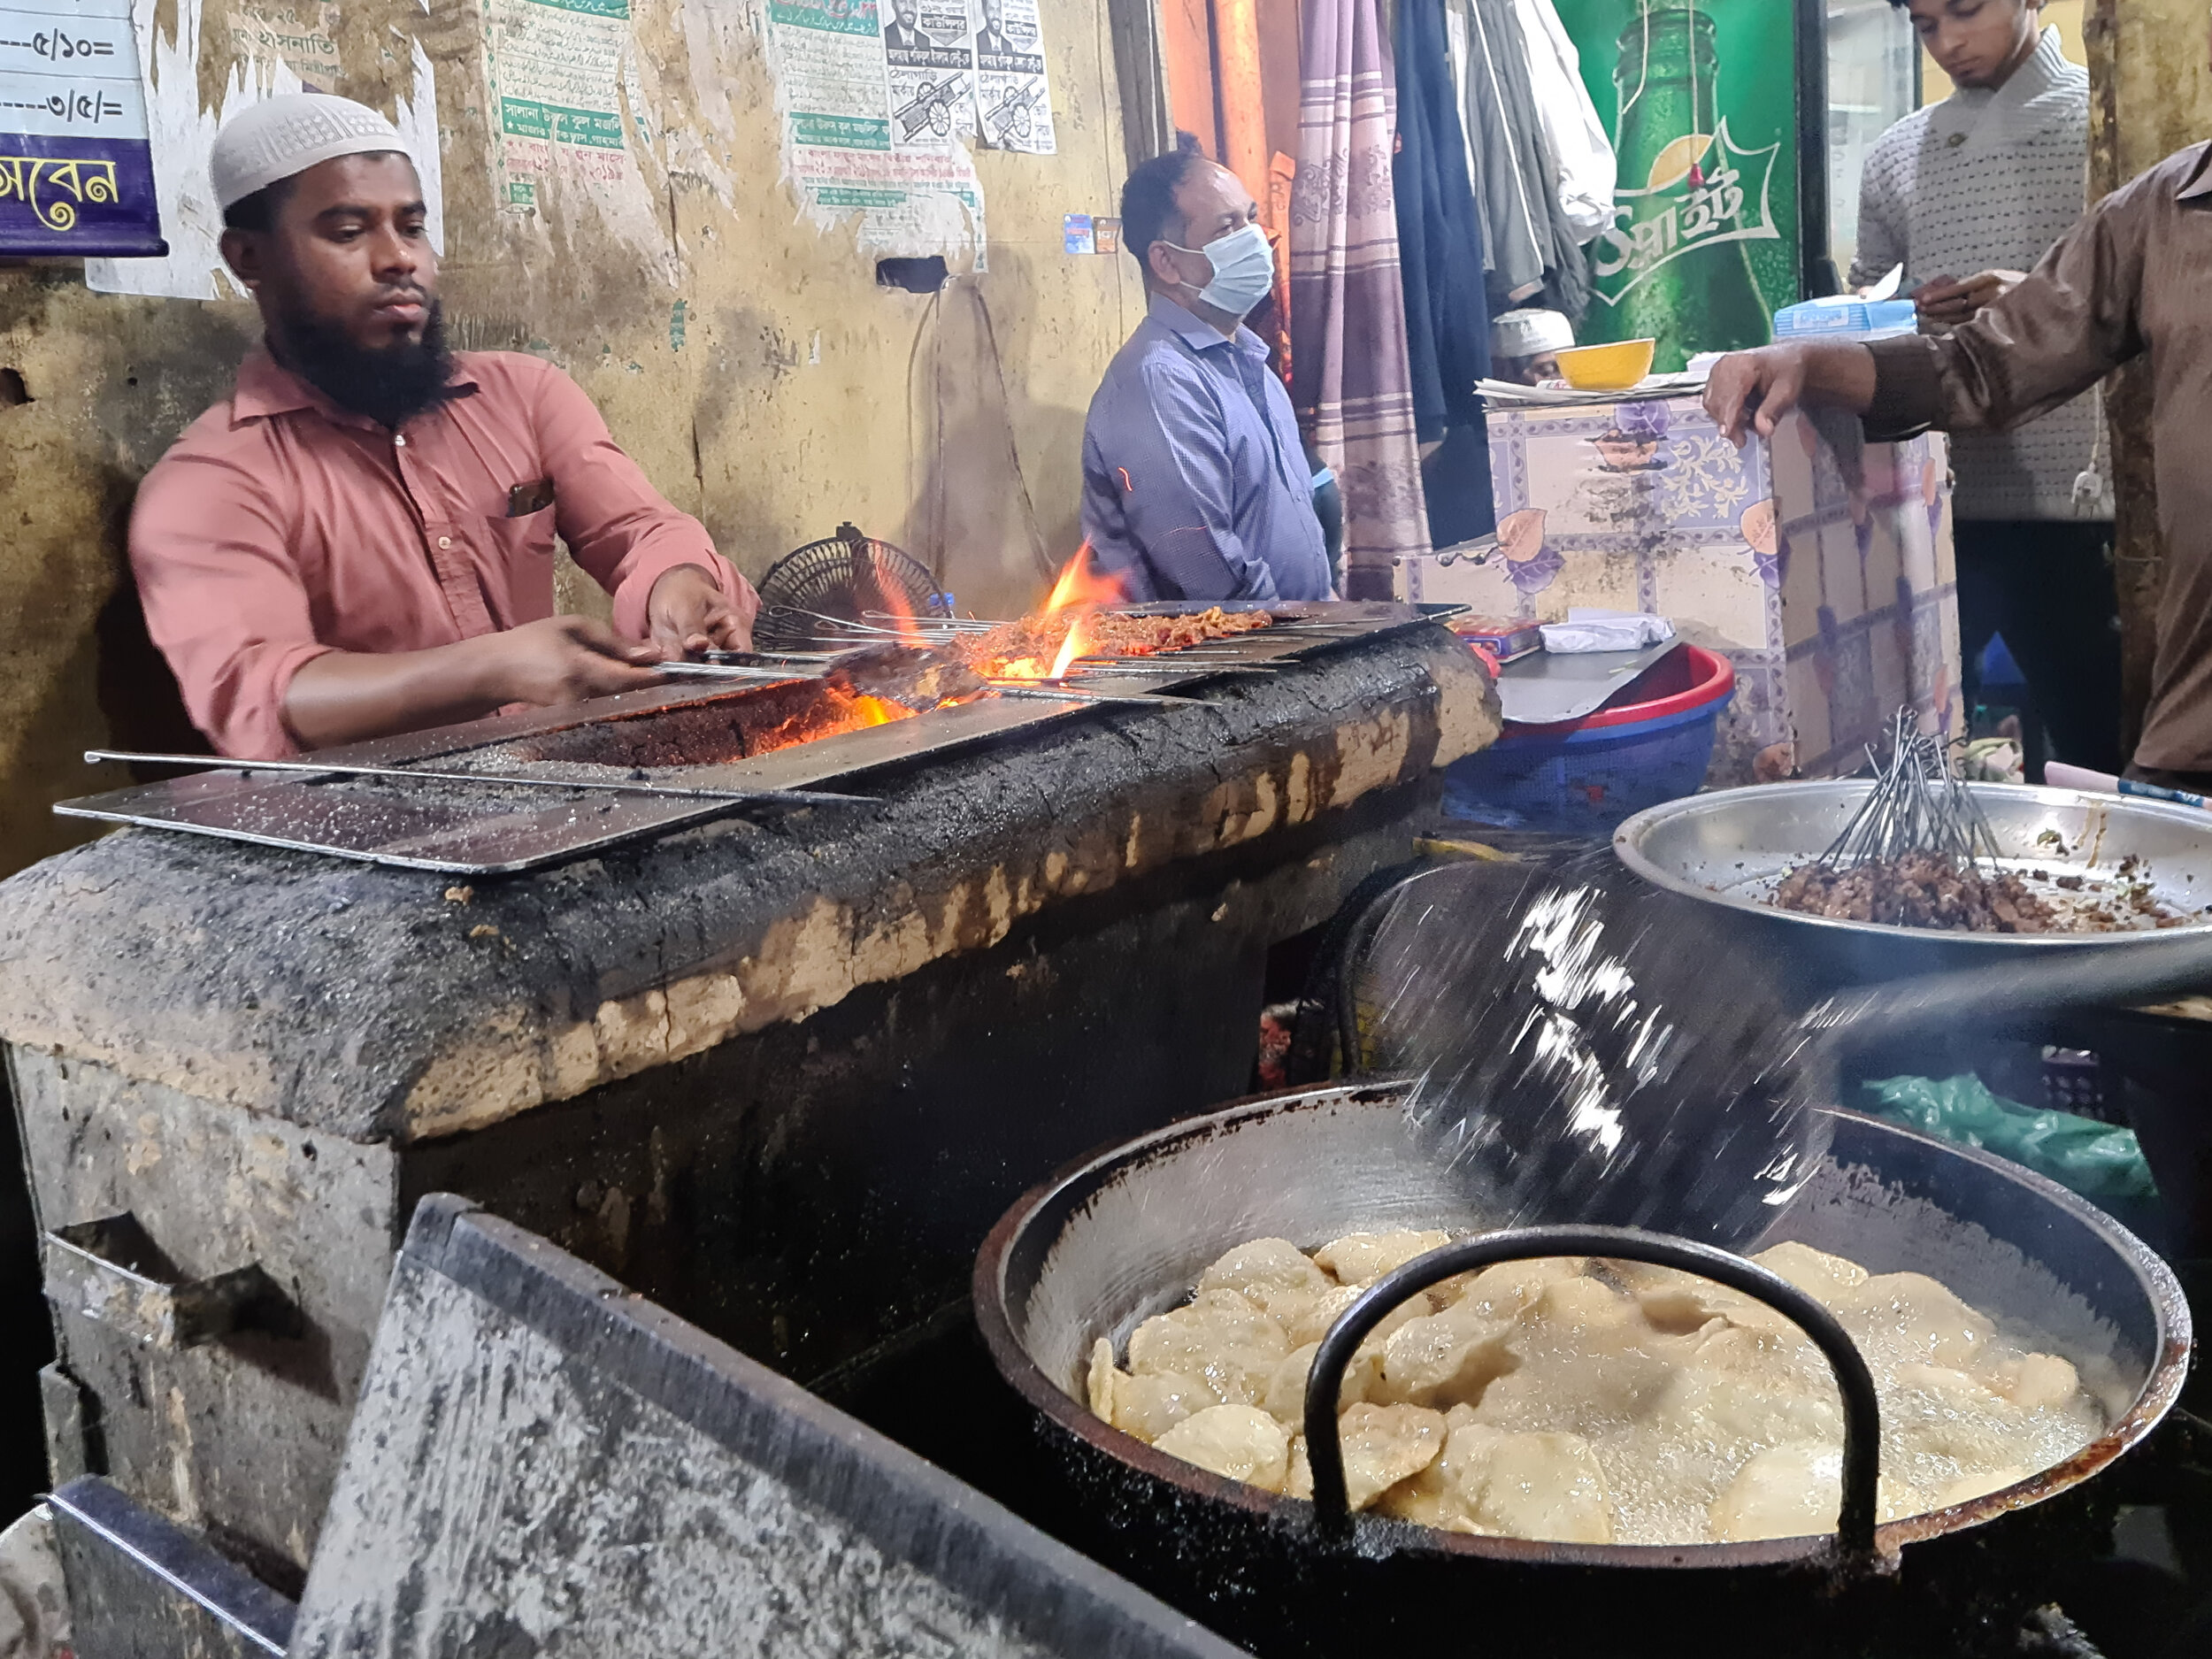 Sheekh Kebab with Luchi is a typical Bangladeshi meal.